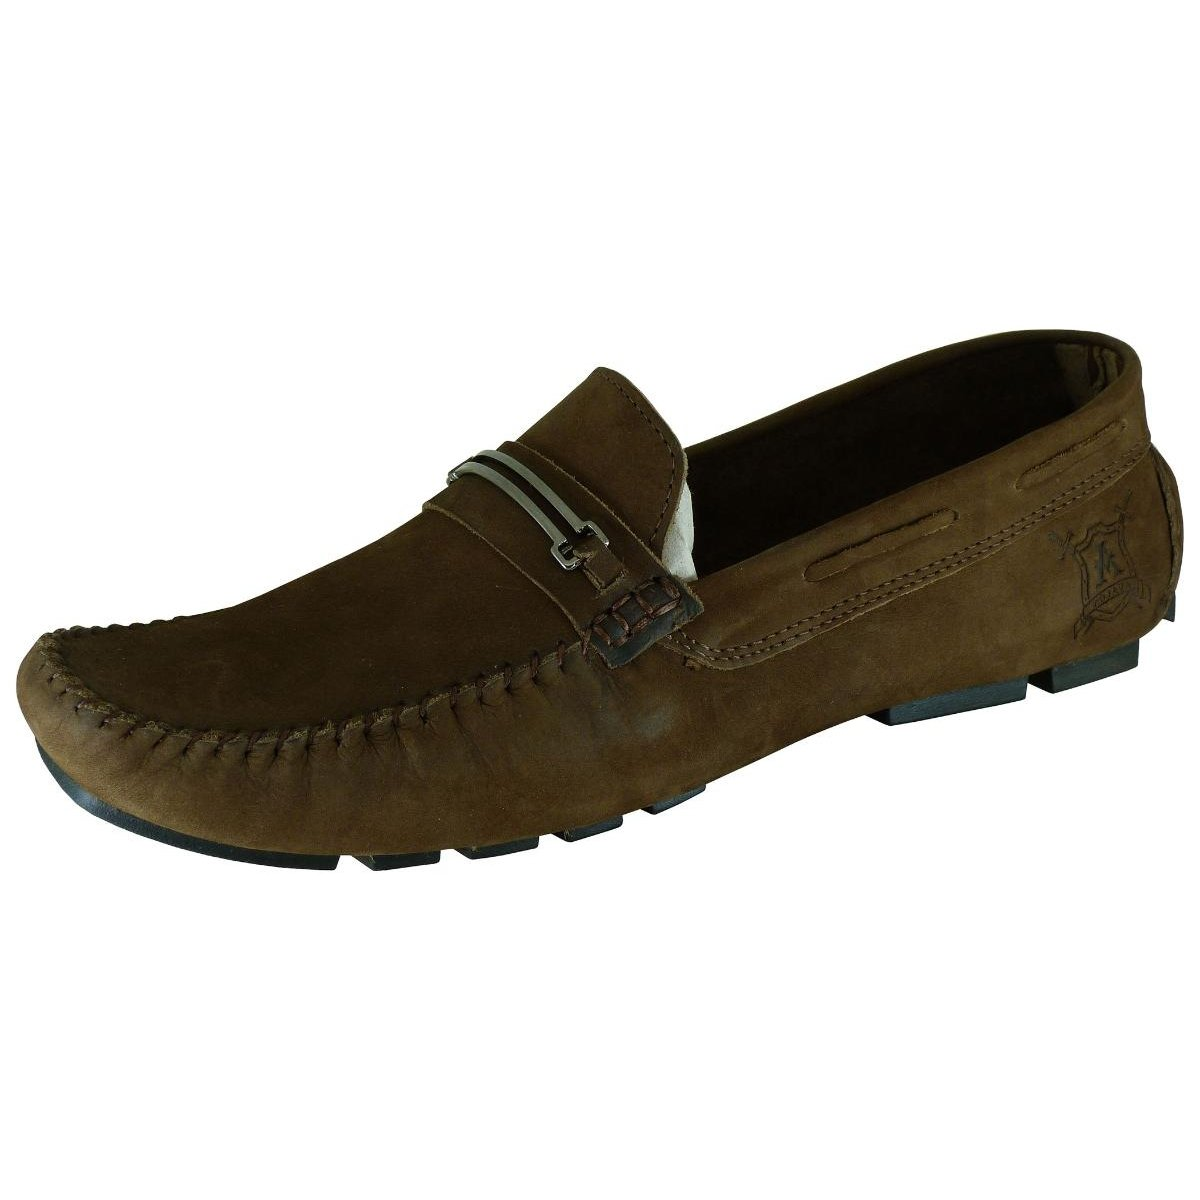 Docksiders Superior Avalon Casual Metal Drive Docksiders Drive com Bege Masculino 0aqISw5